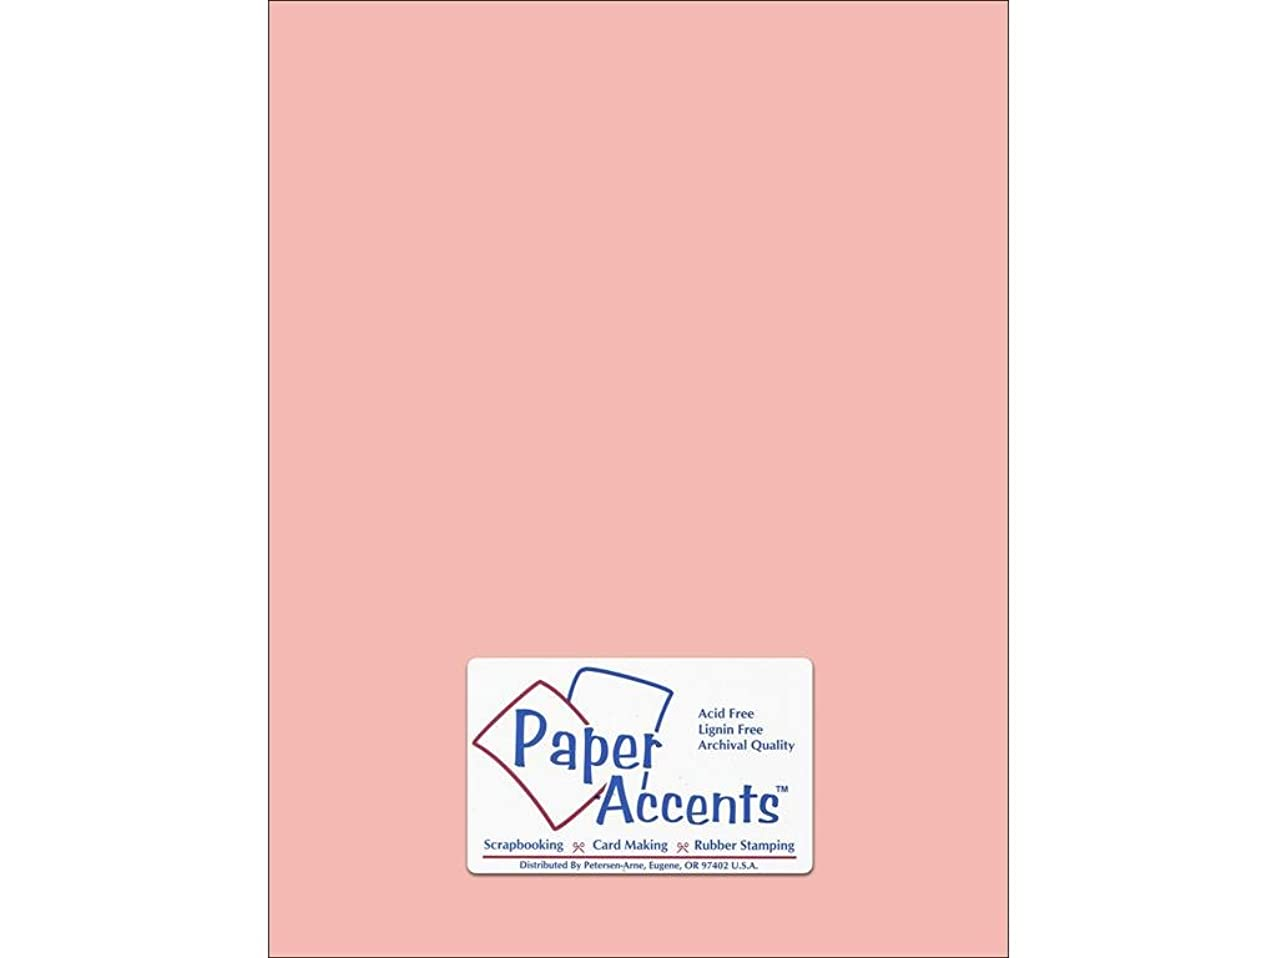 Accent Design Paper Accents Cdstk Smooth 8.5x11 74# Berry Blush